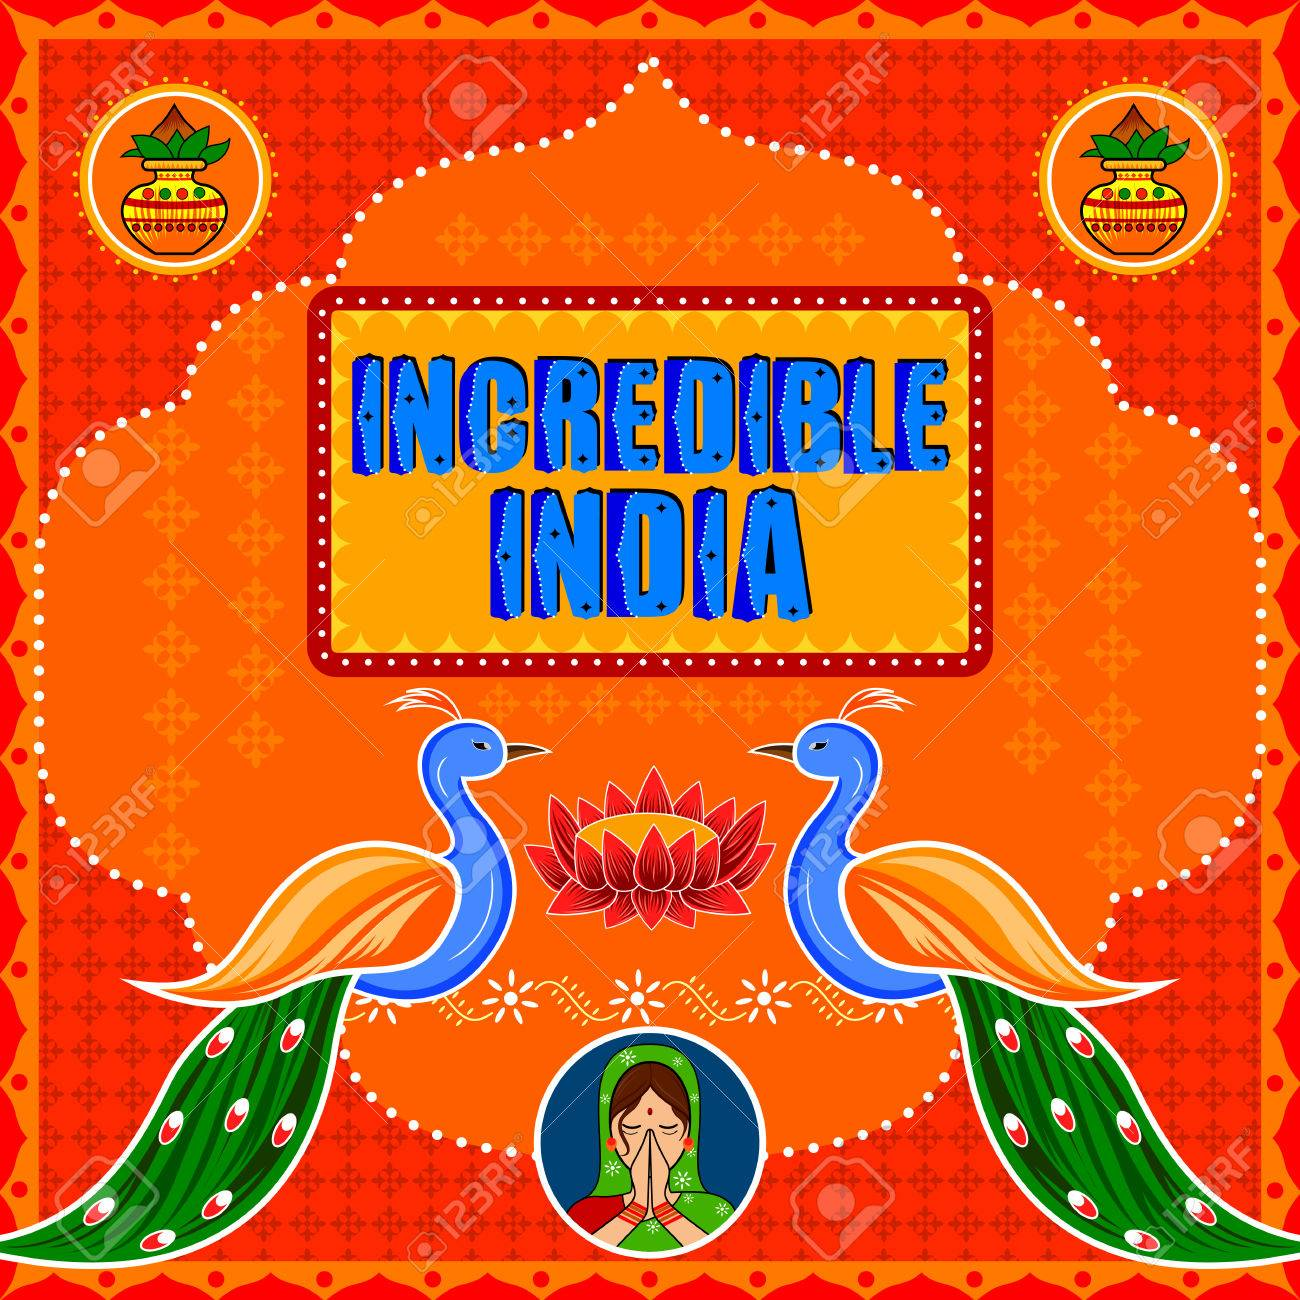 Incredible India background in Indian Truck Art style